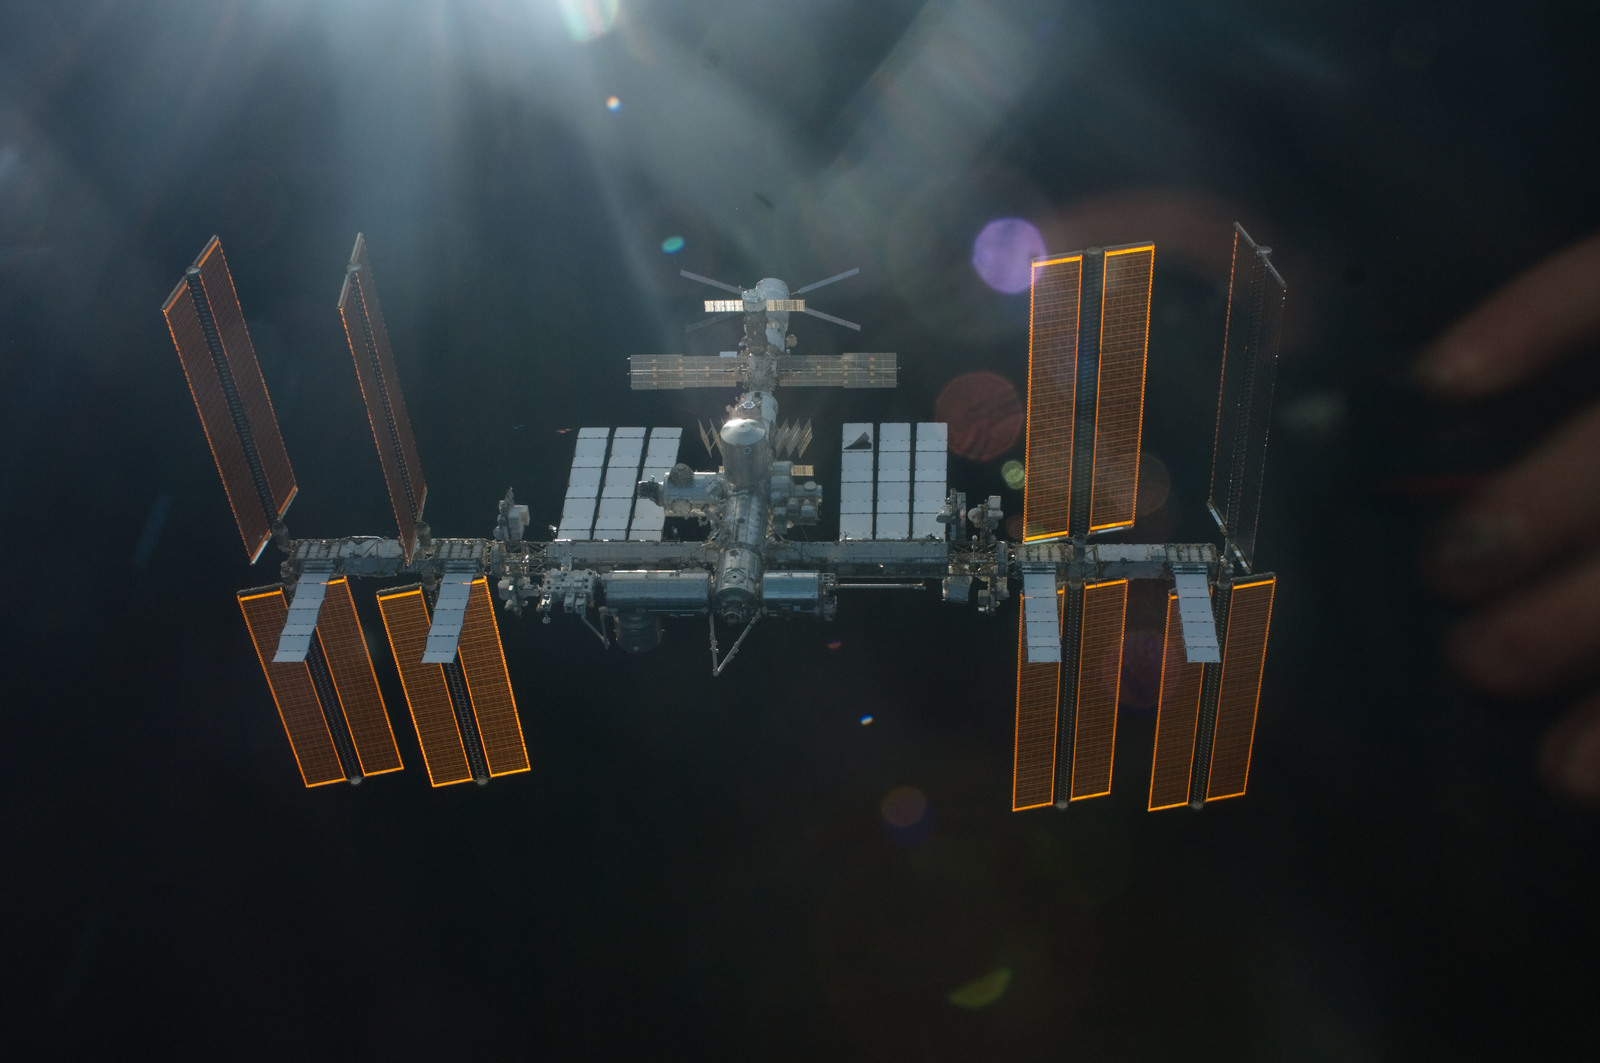 S134E011394 - STS-134 - Overall view of ISS